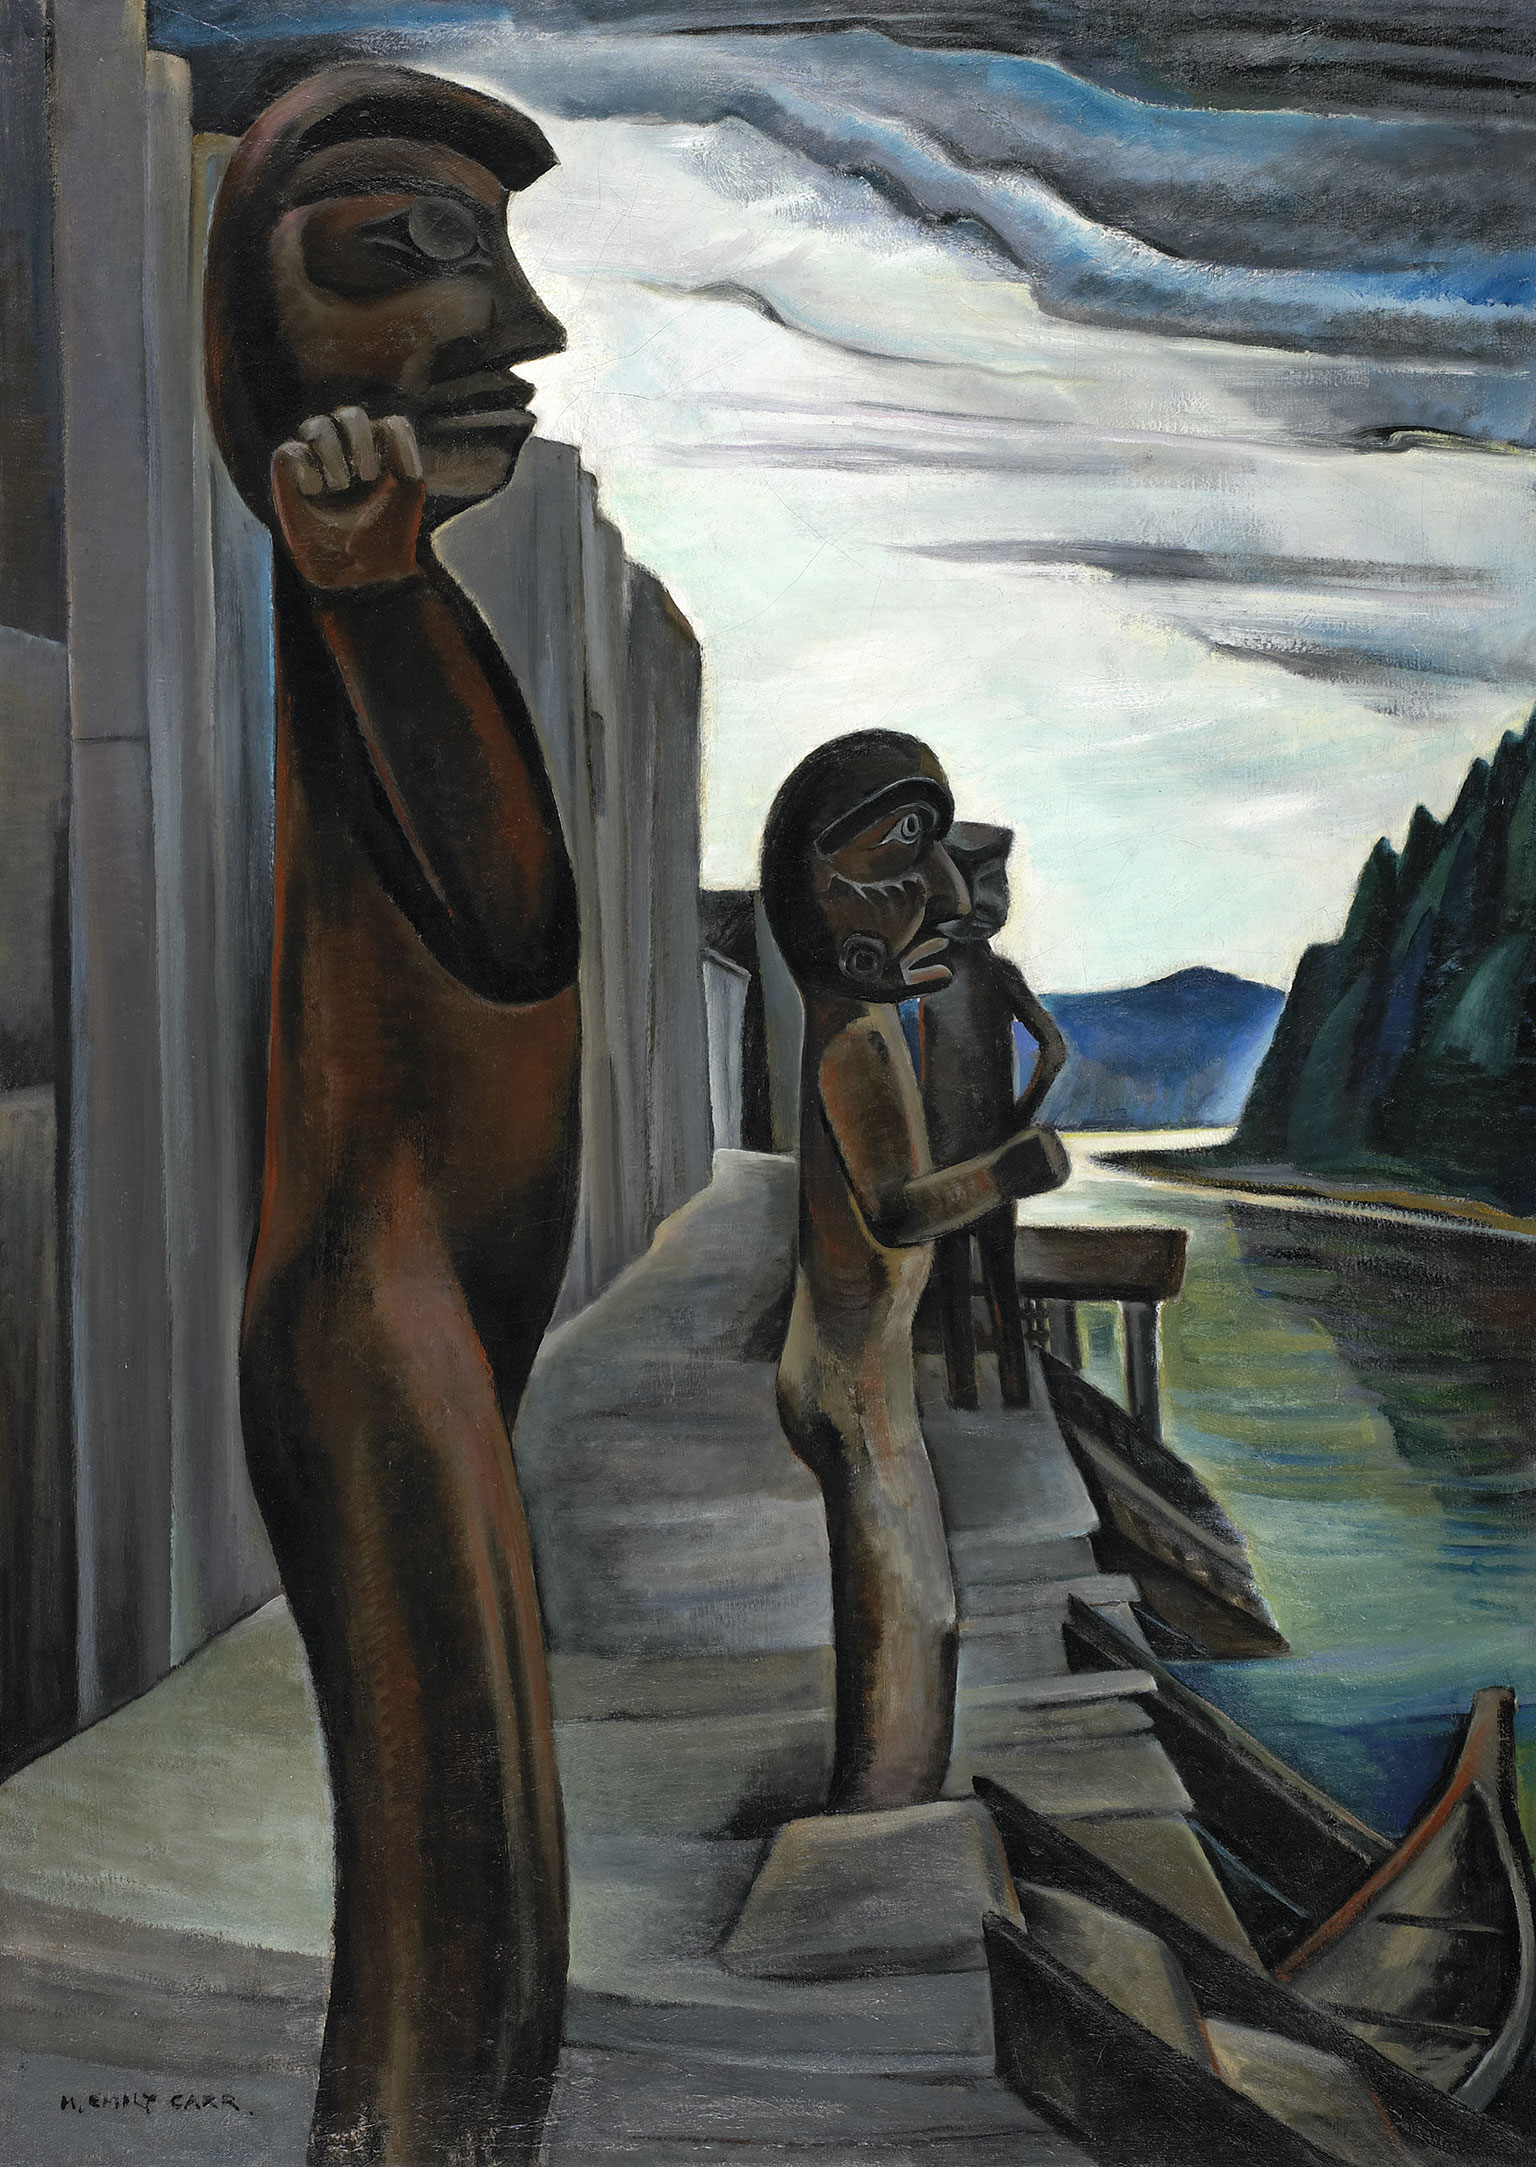 EMILY CARR (pintura) Blunden_harbour_totems_Emily_Carr